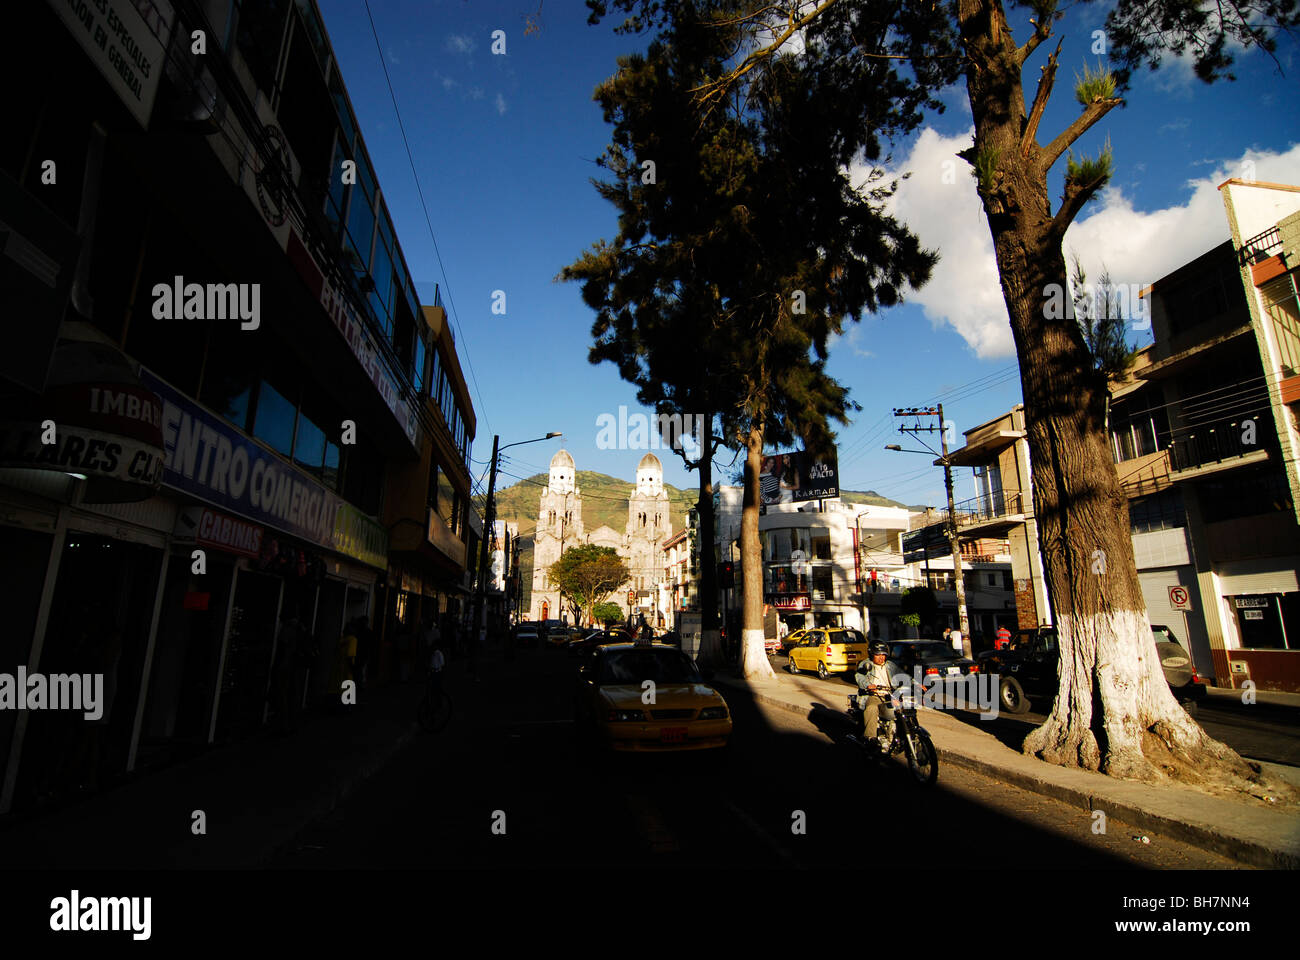 Ecuador, Ibarra, view of crowded urban scene against blue cloudy sky - Stock Image